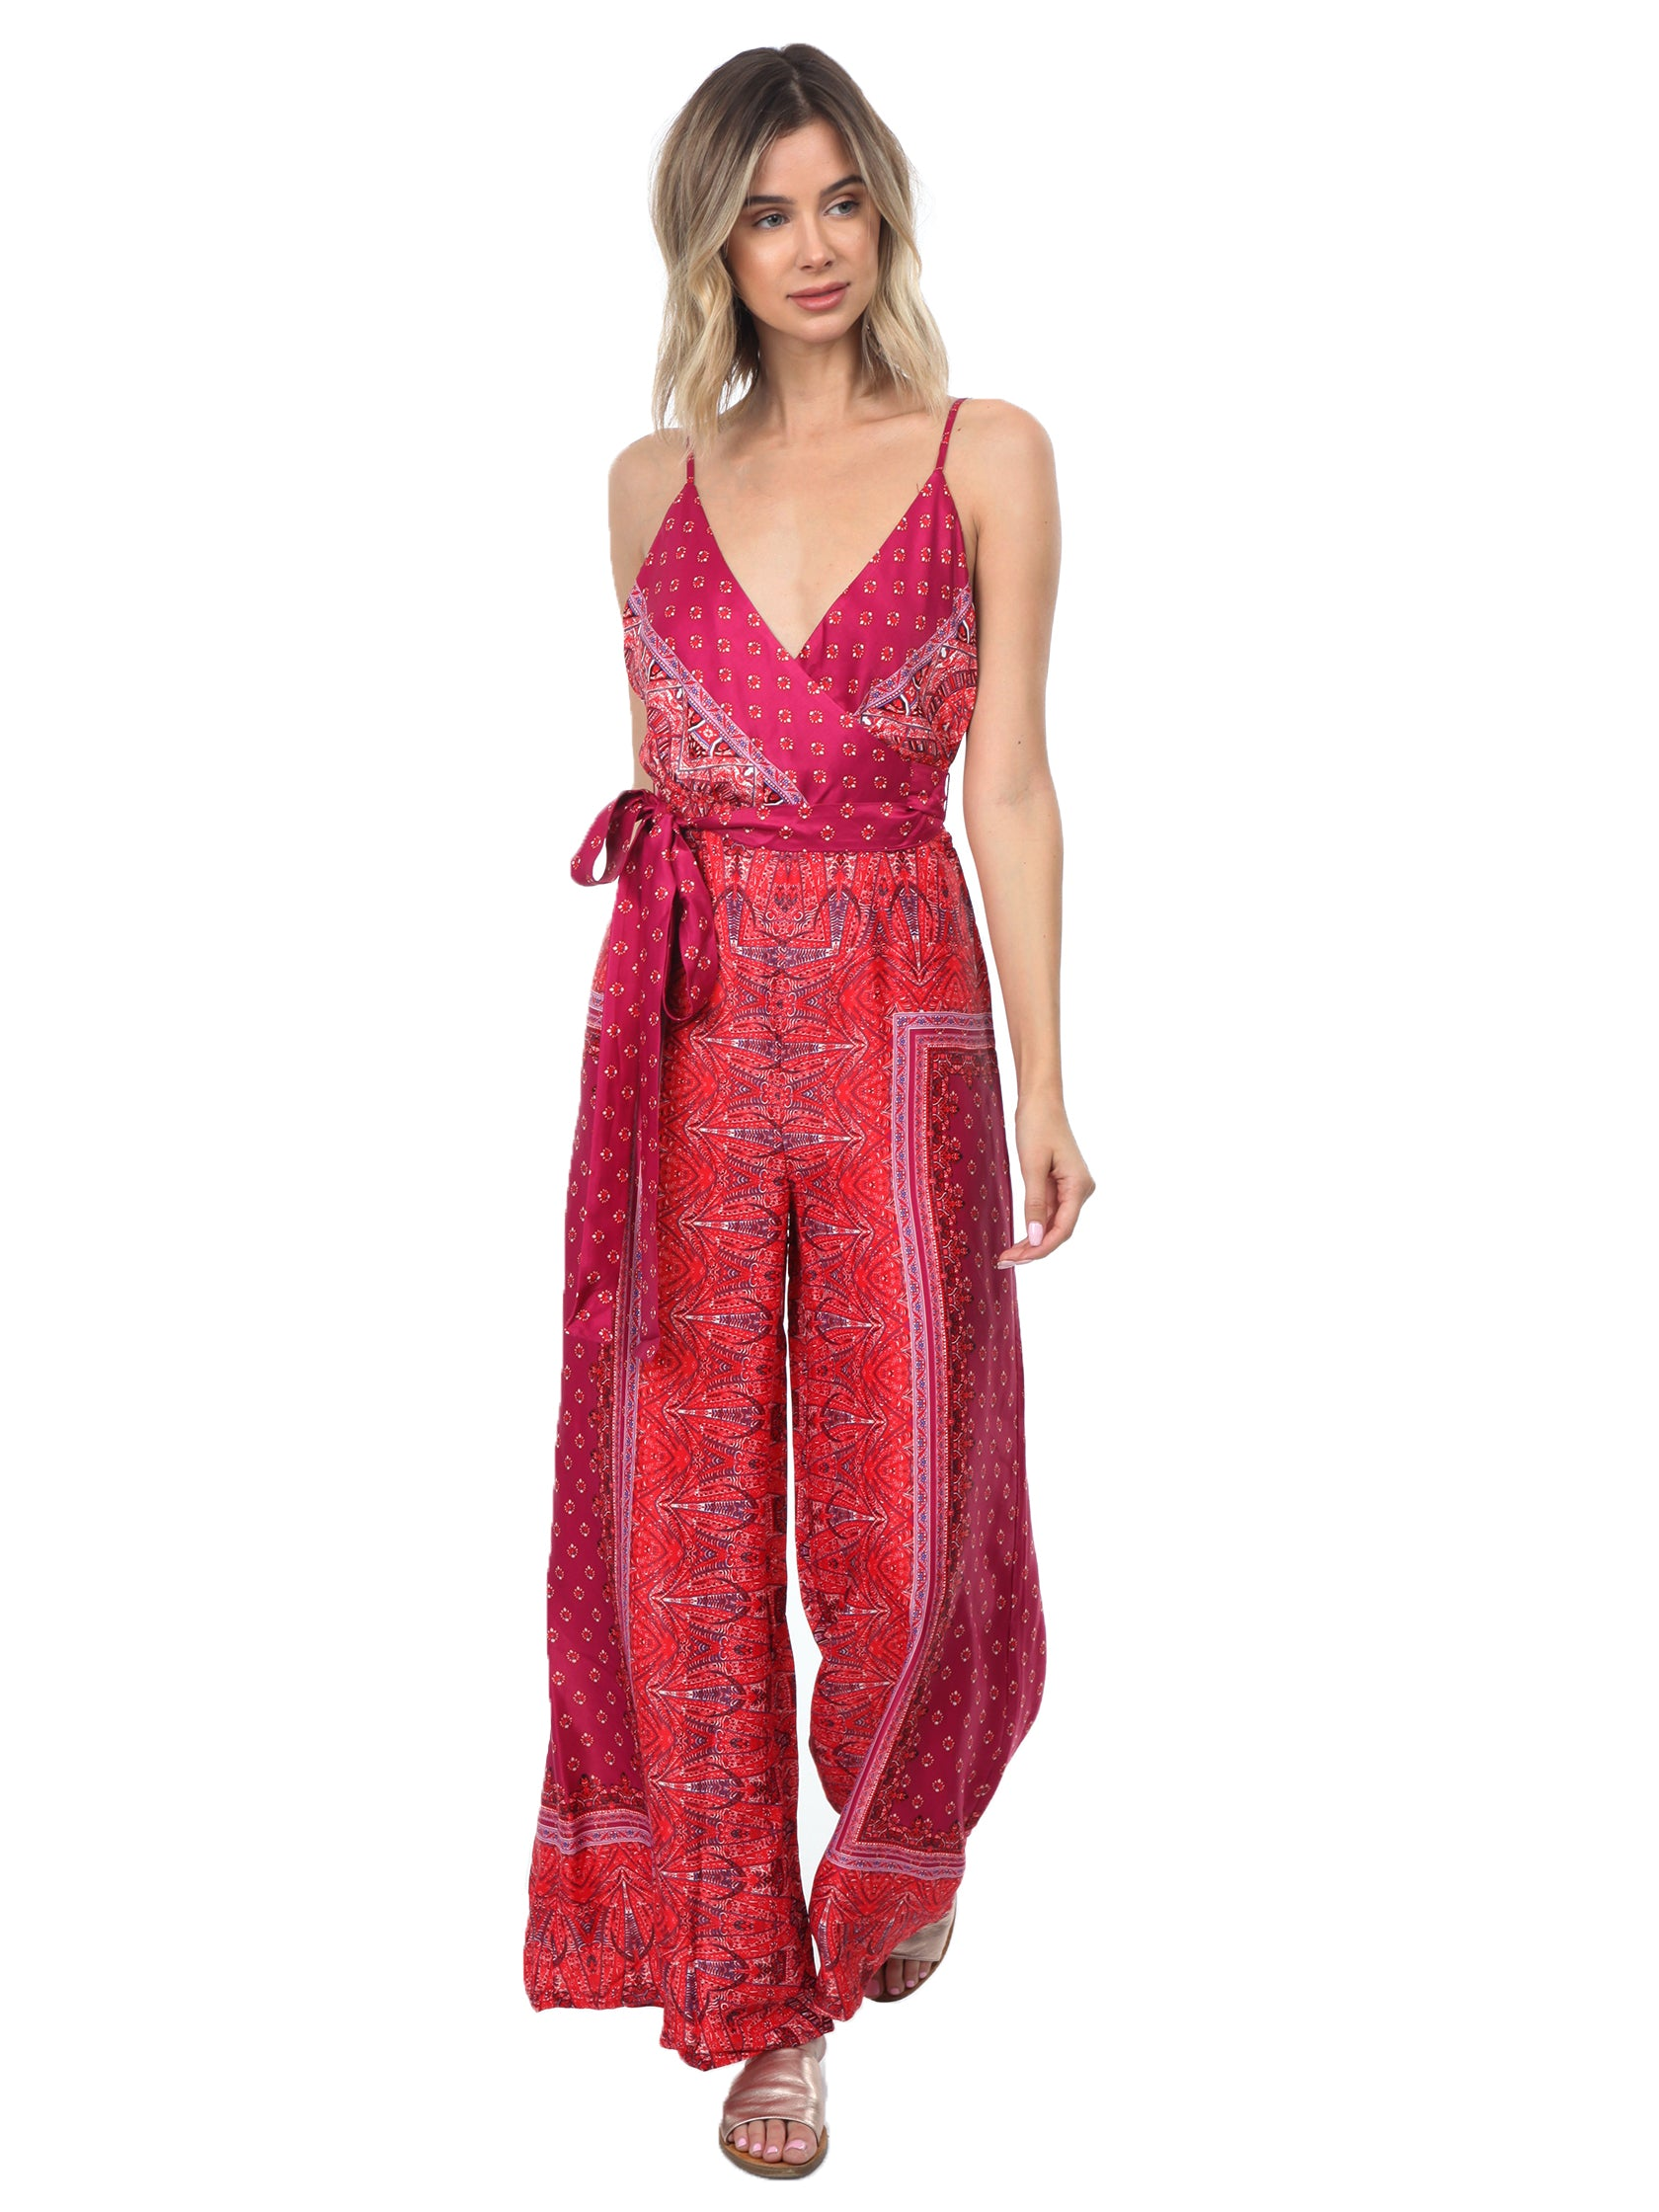 51f2fd839f7 Girl outfit in a jumpsuit rental from free people called cabbage rose  jumpsuit jpg 1680x2240 Cabbage